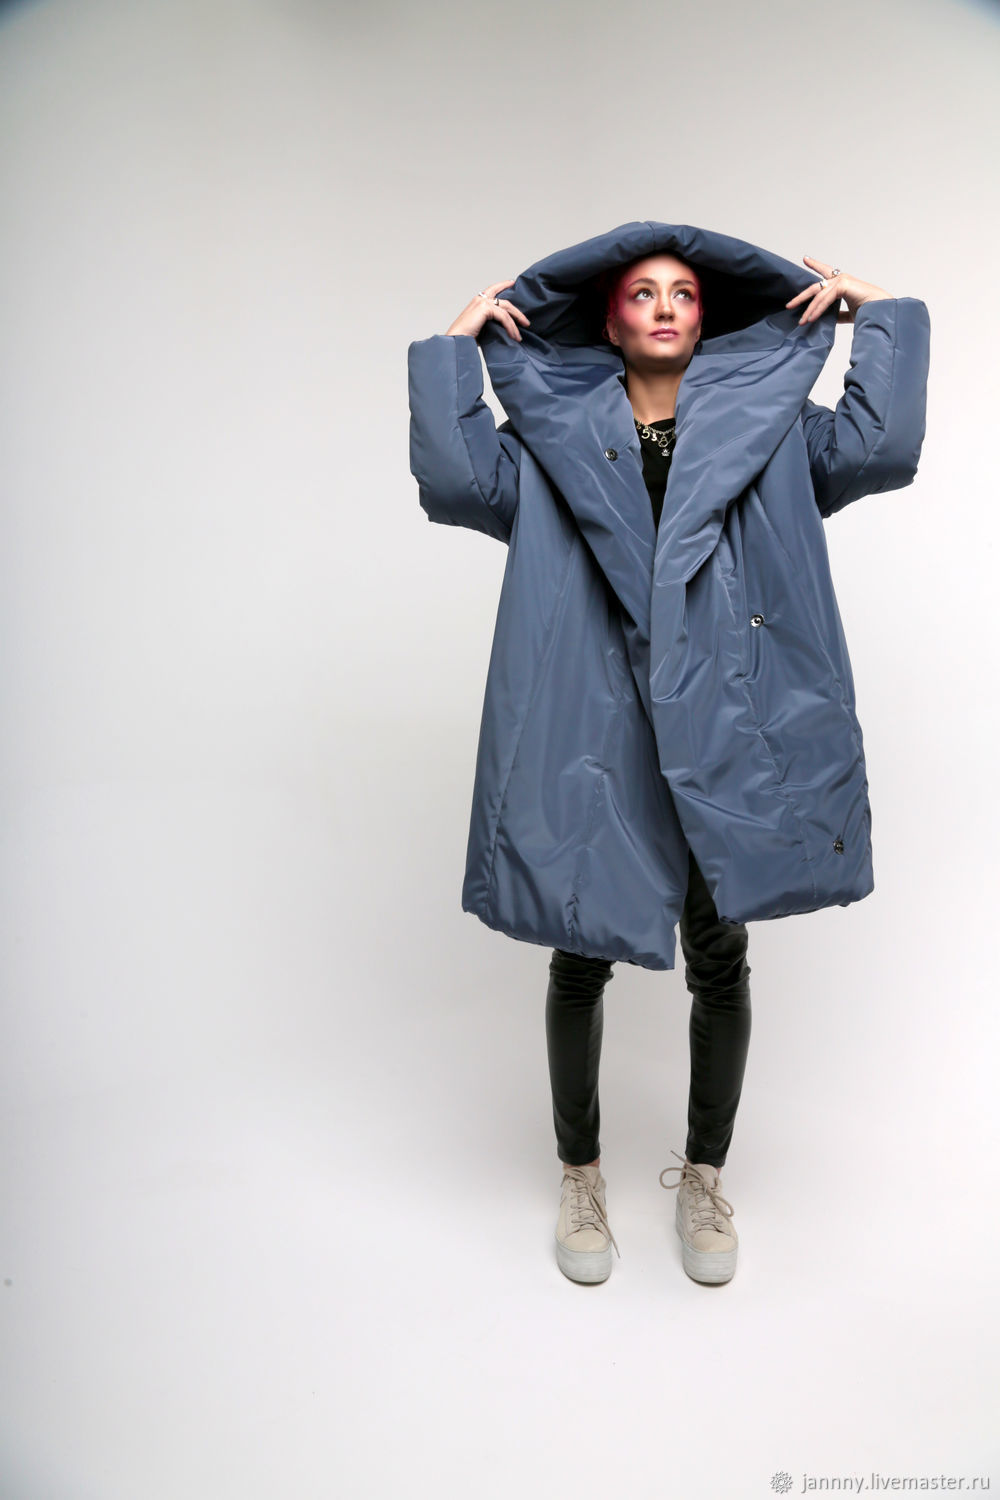 Jacket blanket seals shop online on livemaster with for Outer cloth